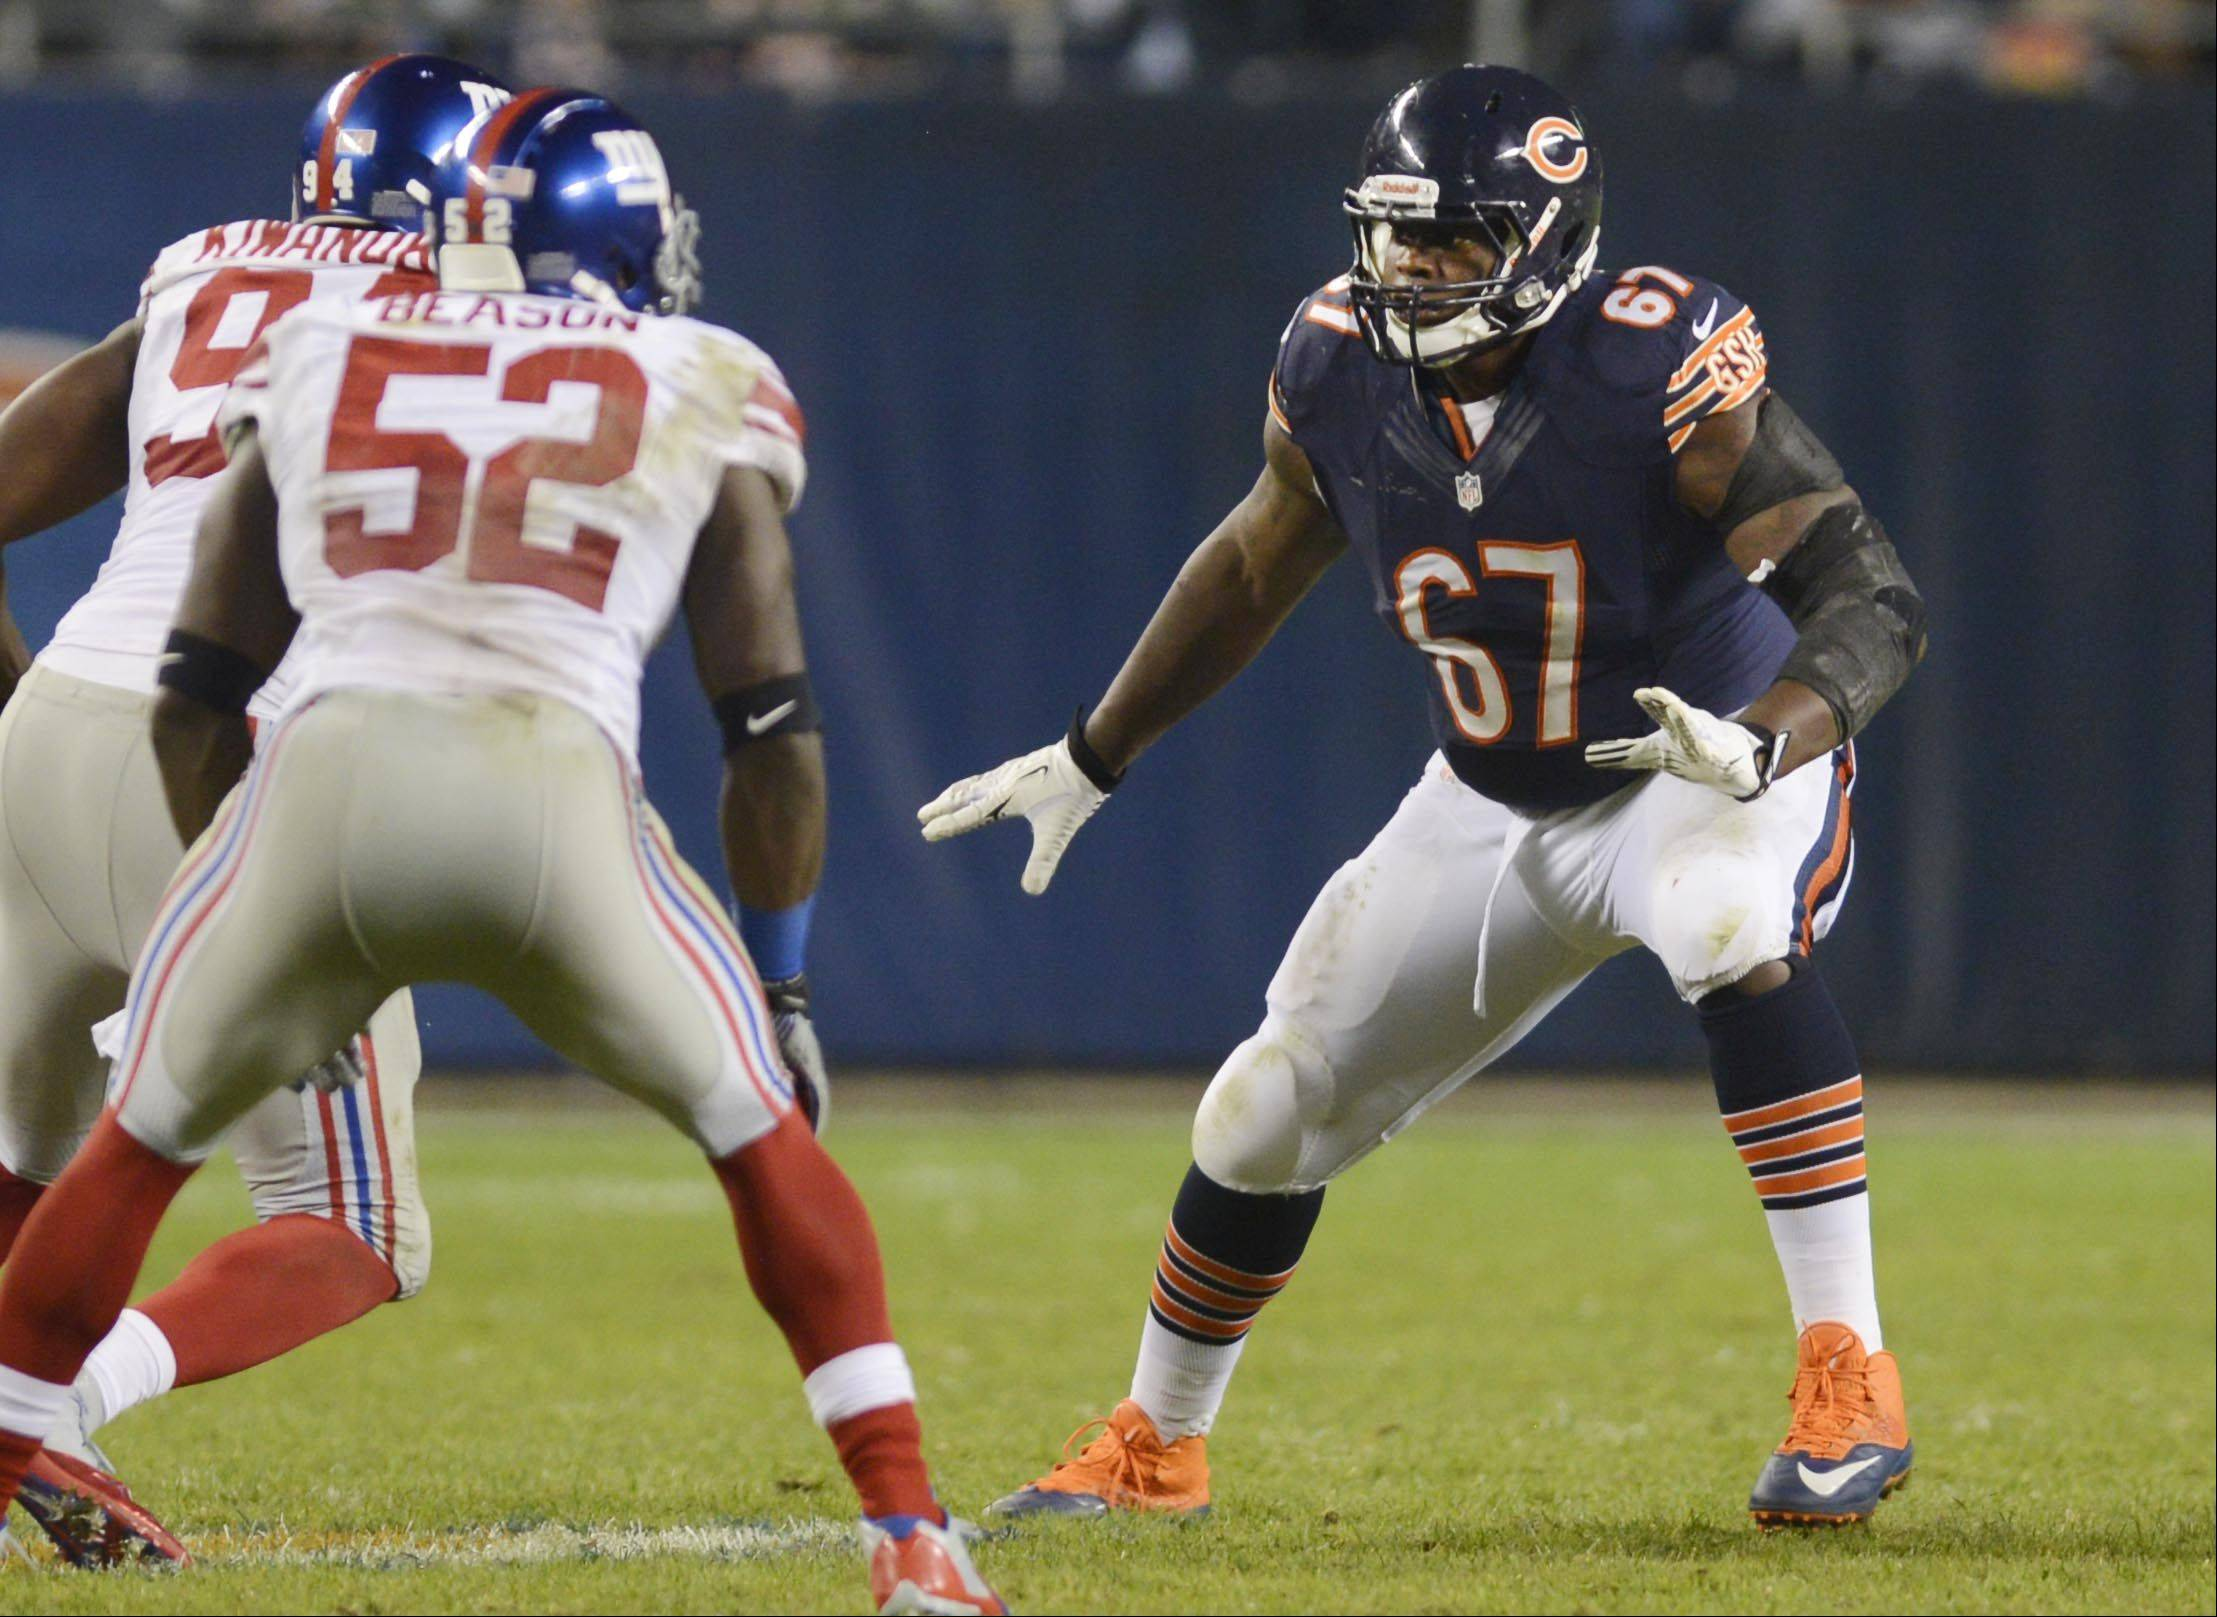 Bears' Mills gets plenty of encouragement from his cousin